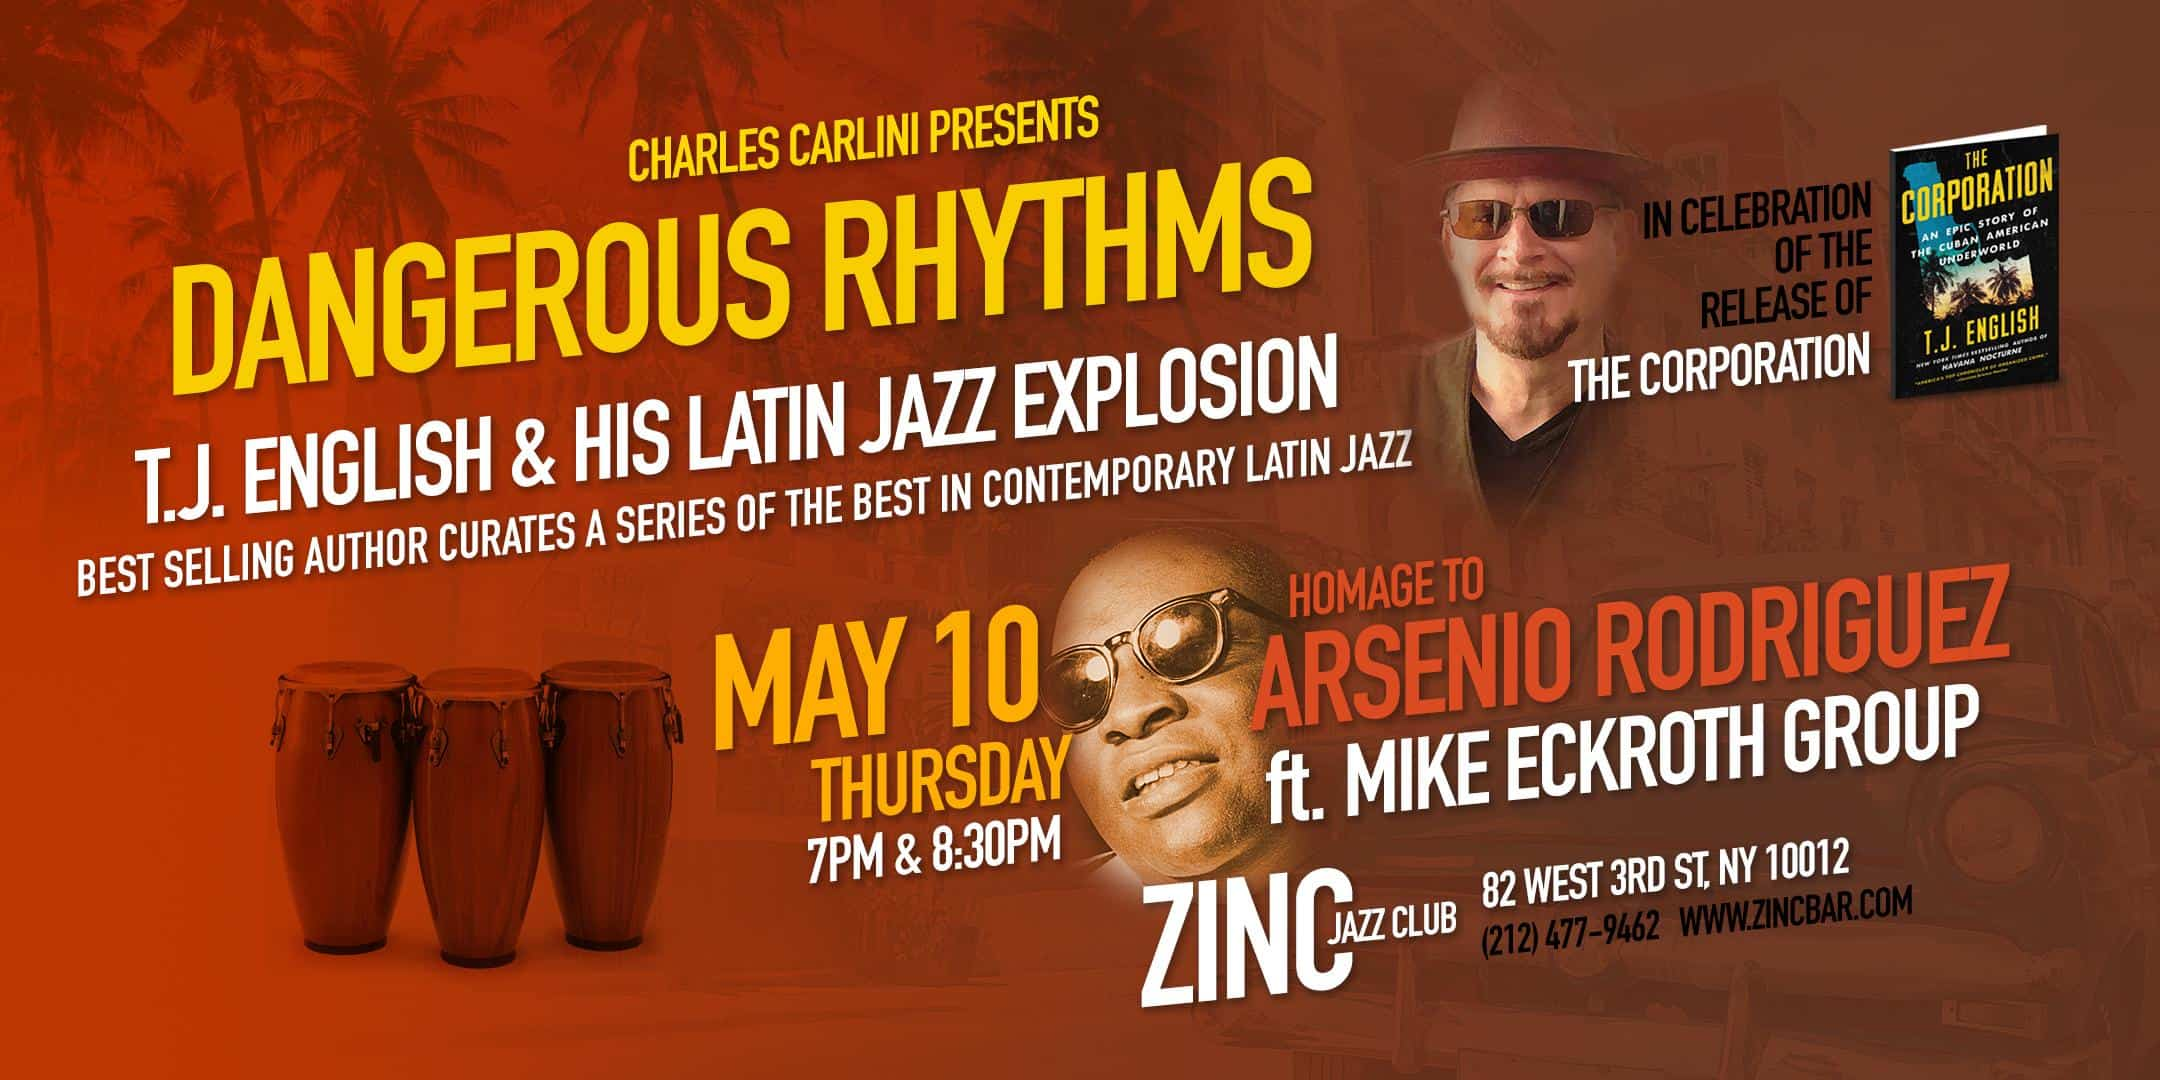 Dangerous Rhythms: T.J. English and his Latin Jazz Explosion